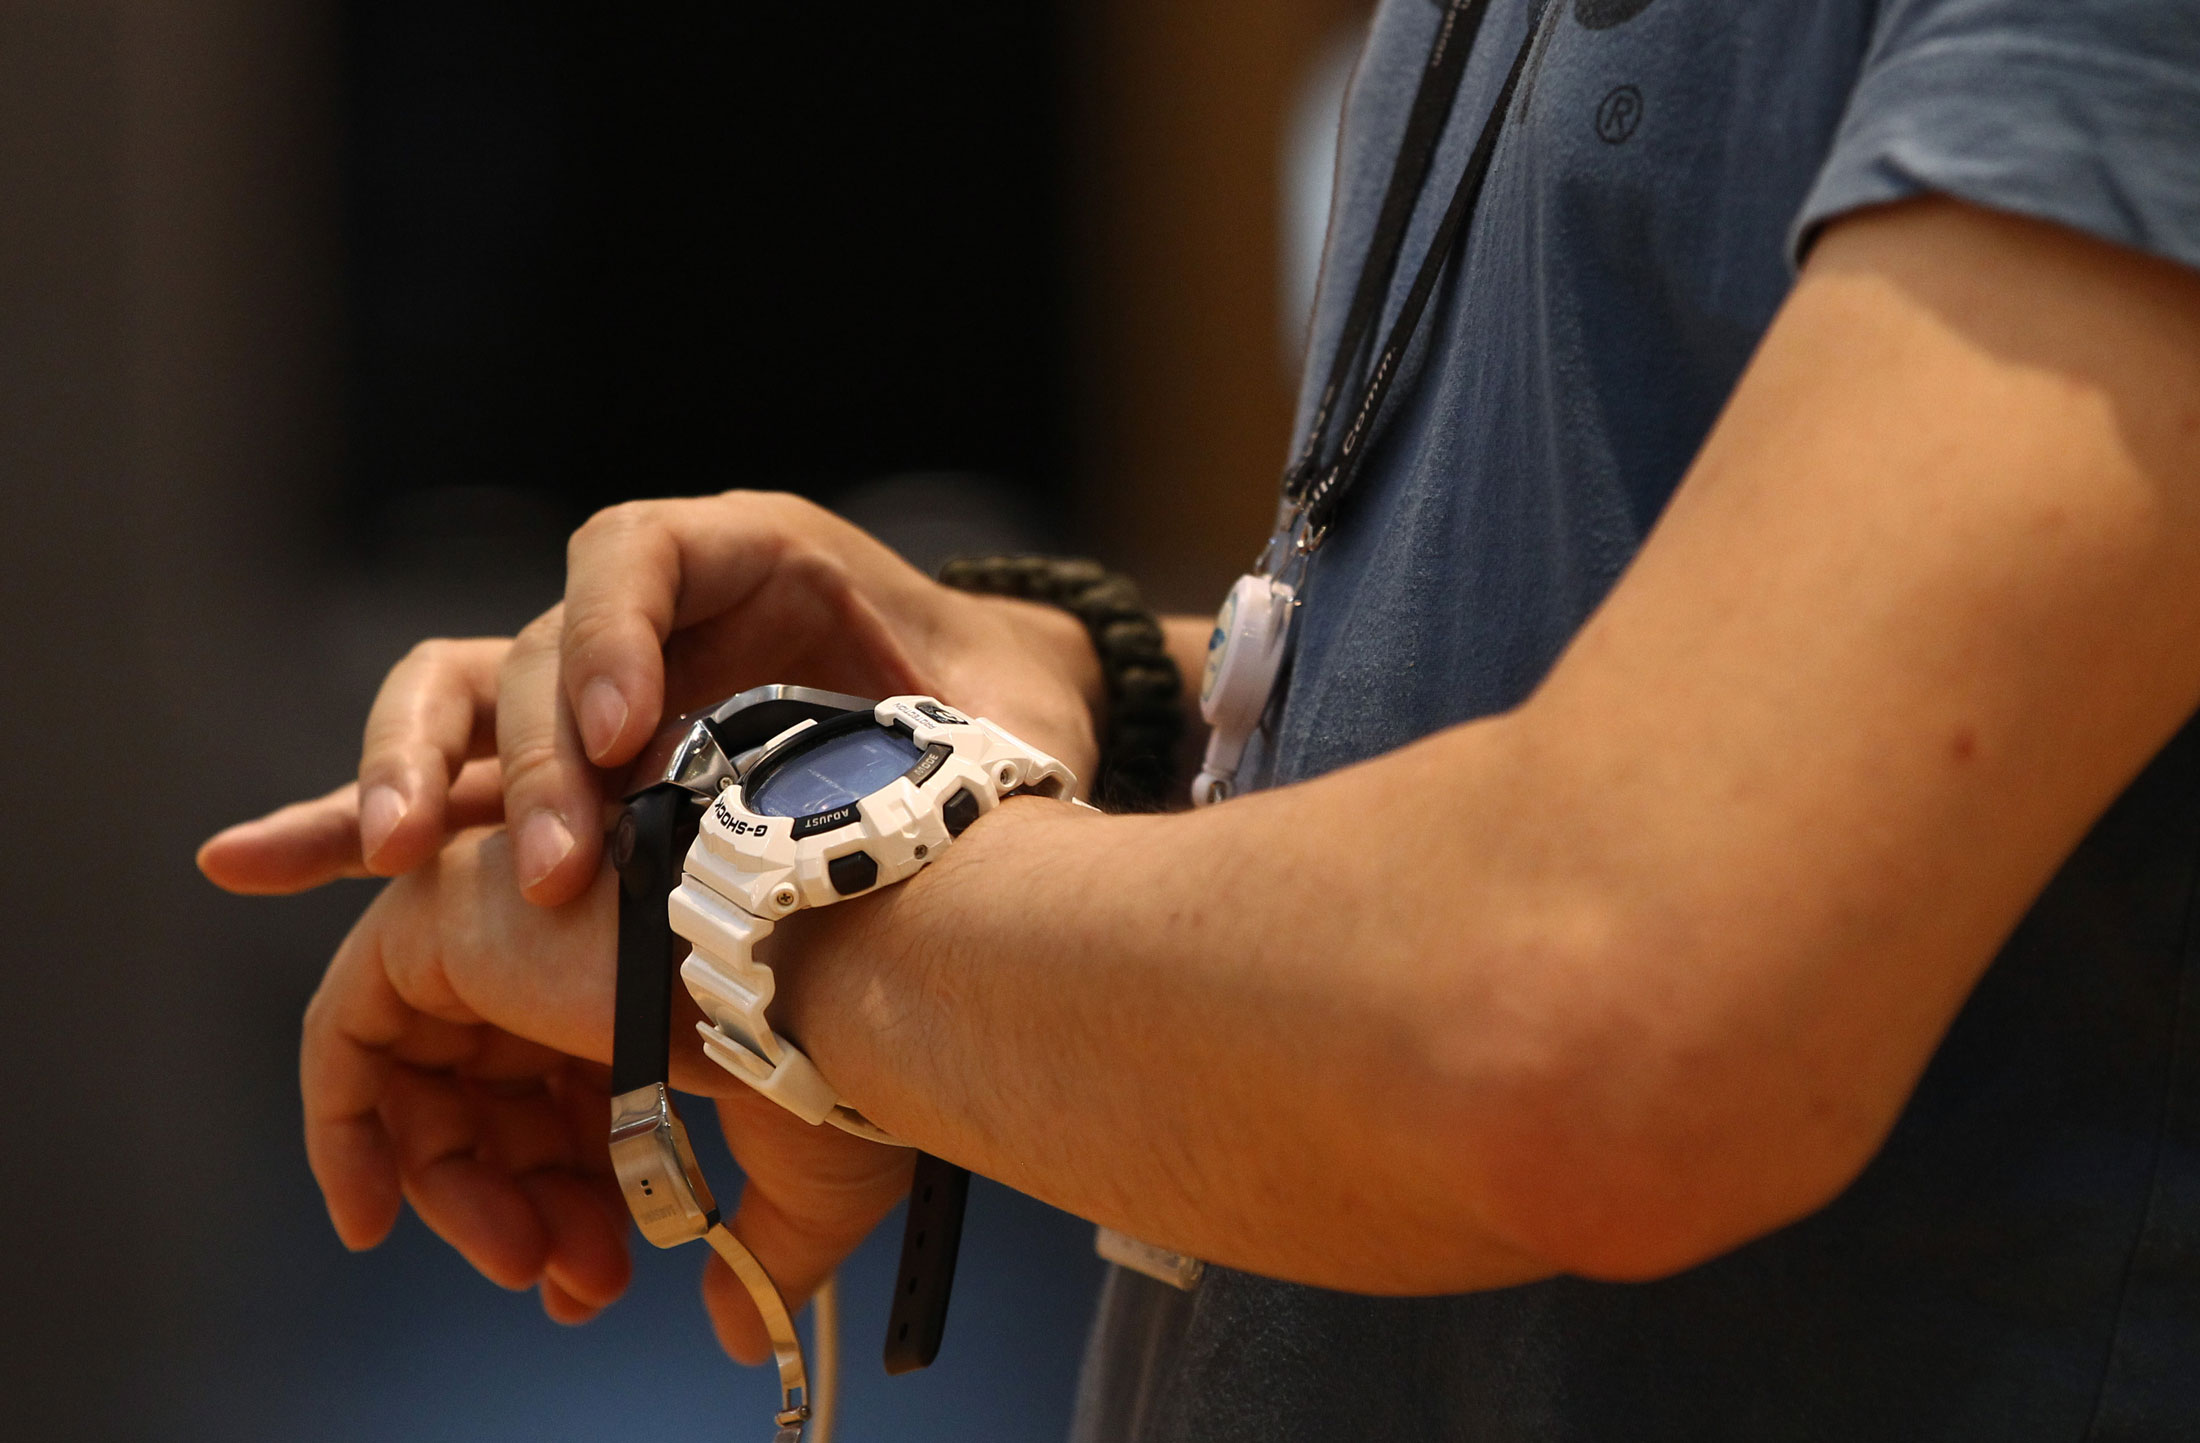 How Does G-Shock Compete in a World of Fitbits and Apple